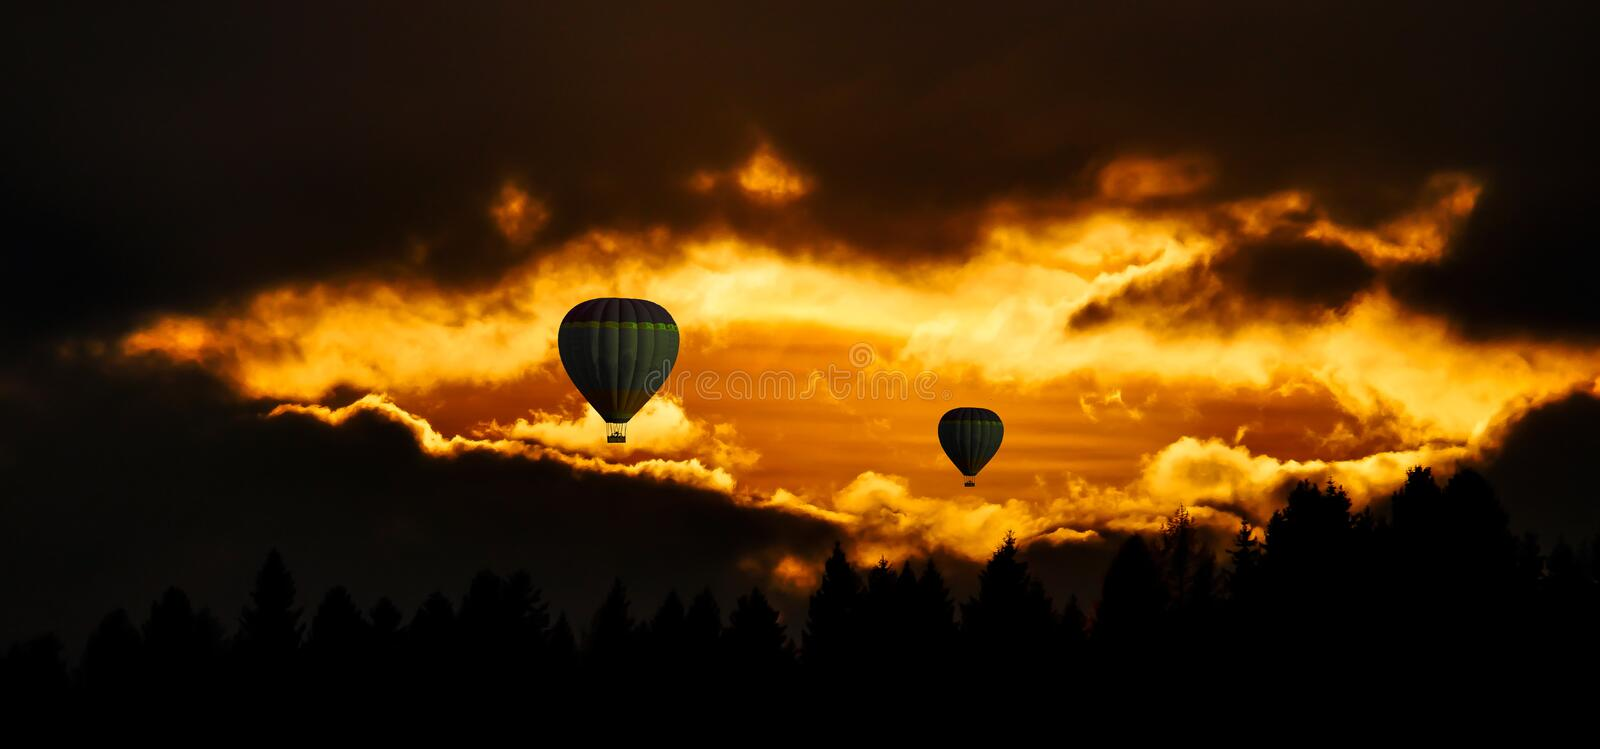 Sky, Nature, Hot Air Ballooning, Atmosphere royalty free stock photo